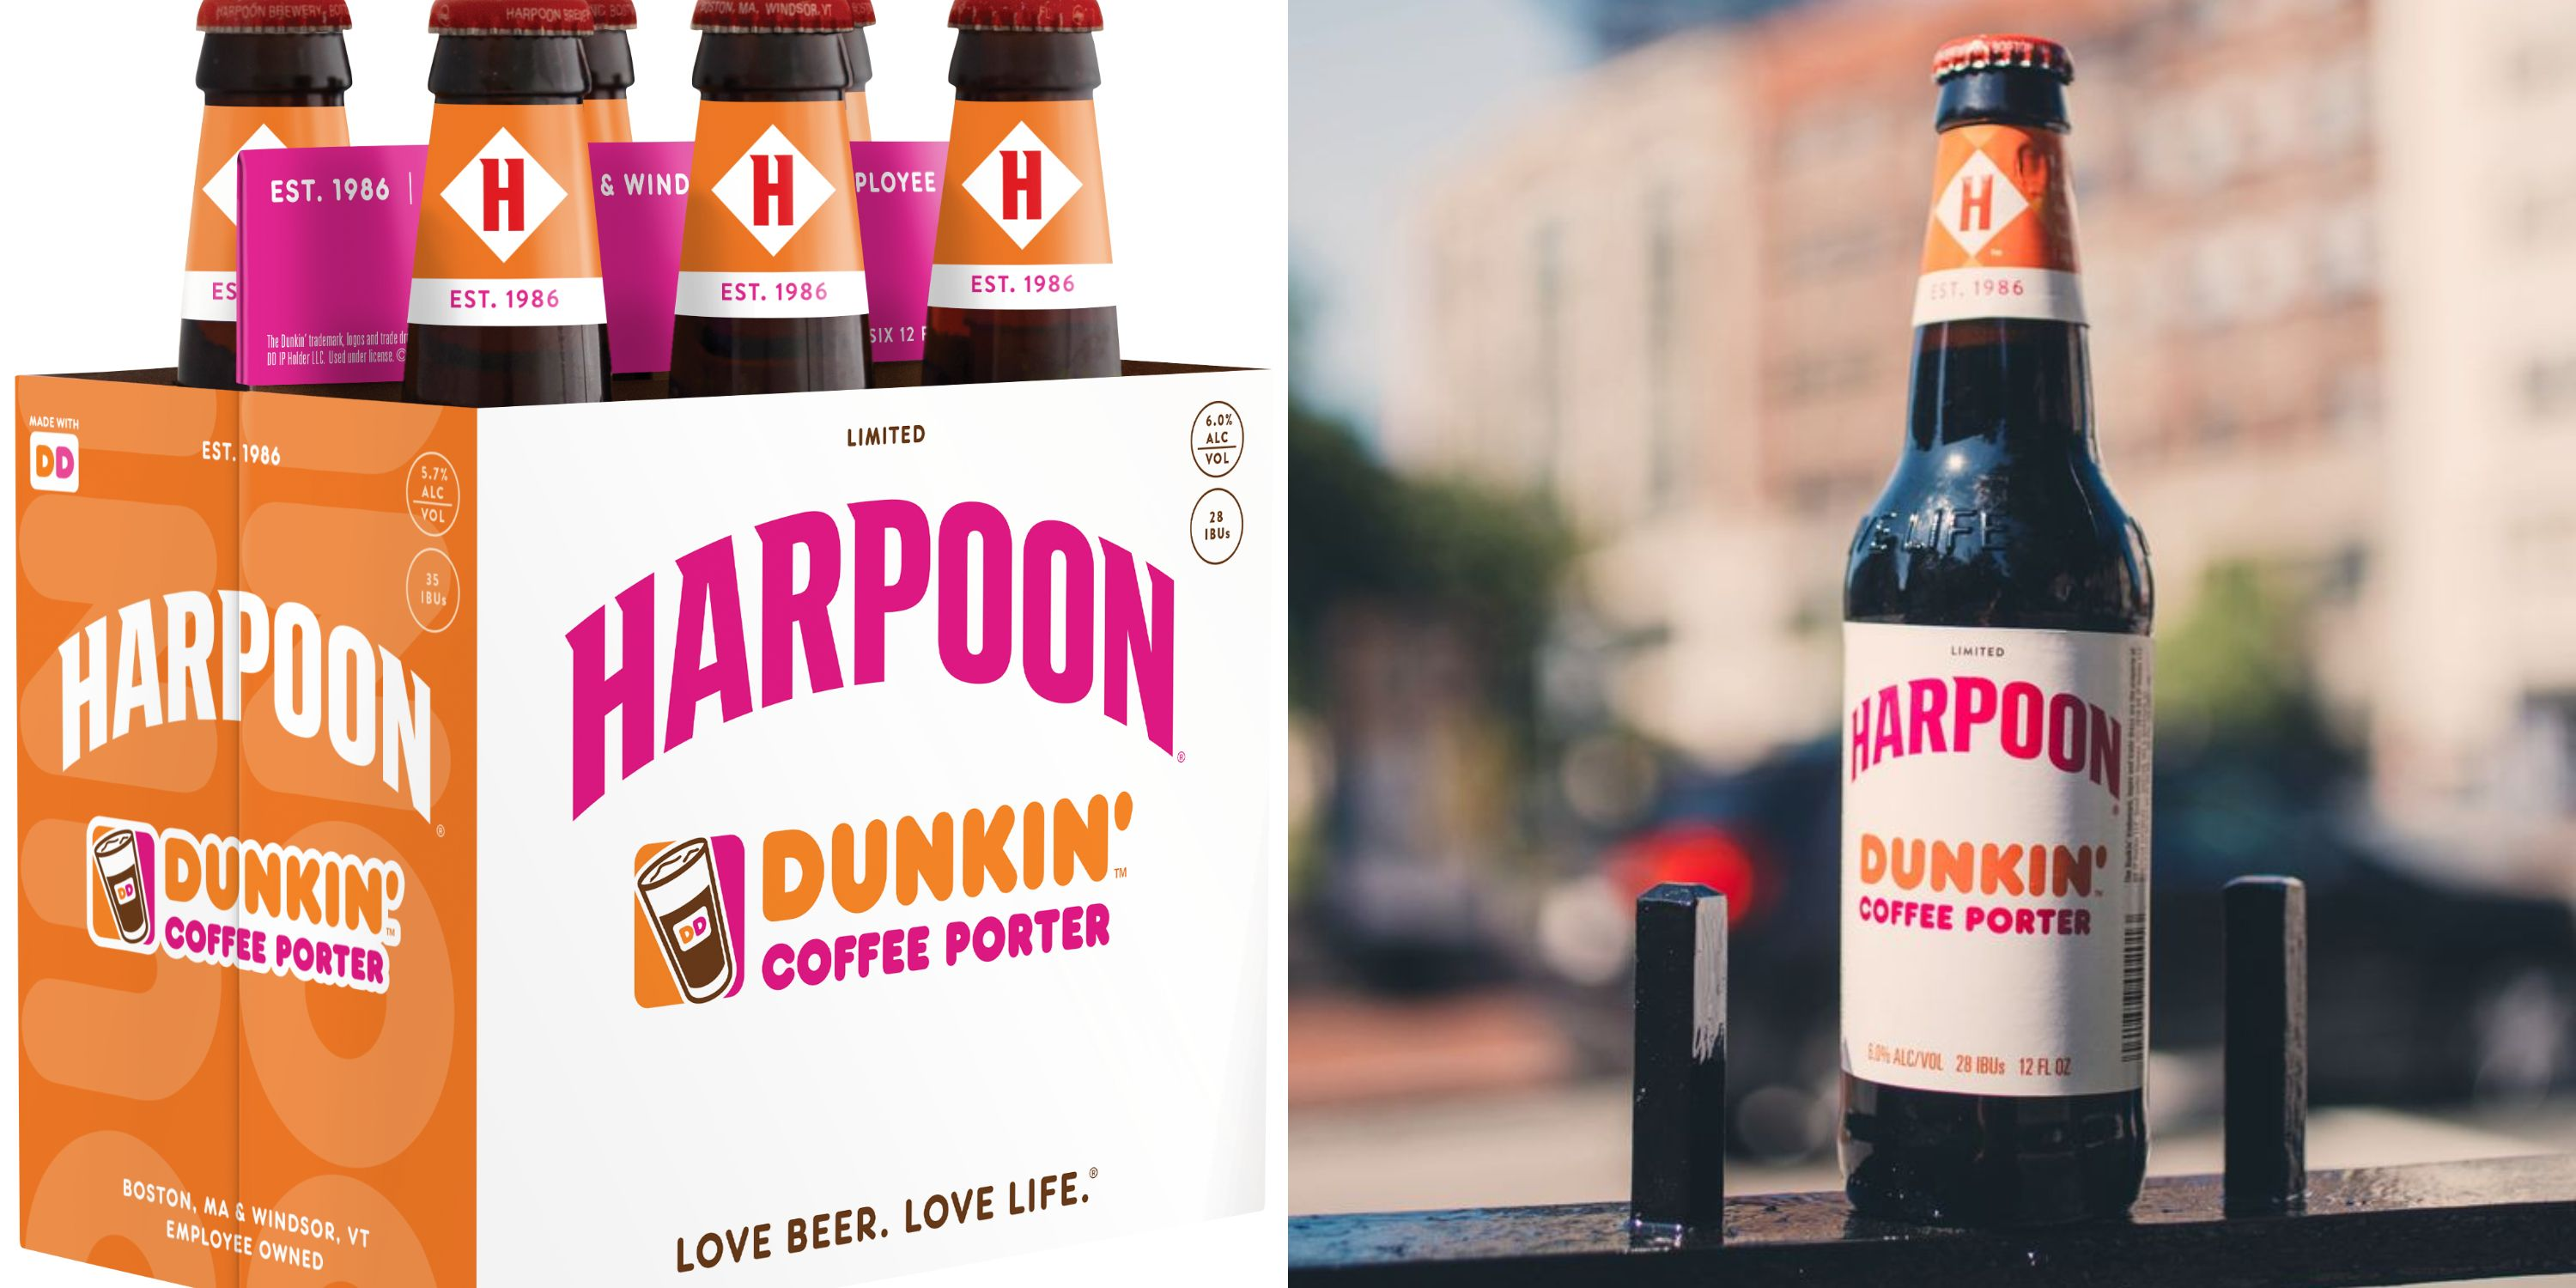 You Can Get Dunkin' And Harpoon's Coffee Porter Again For A Limited Time